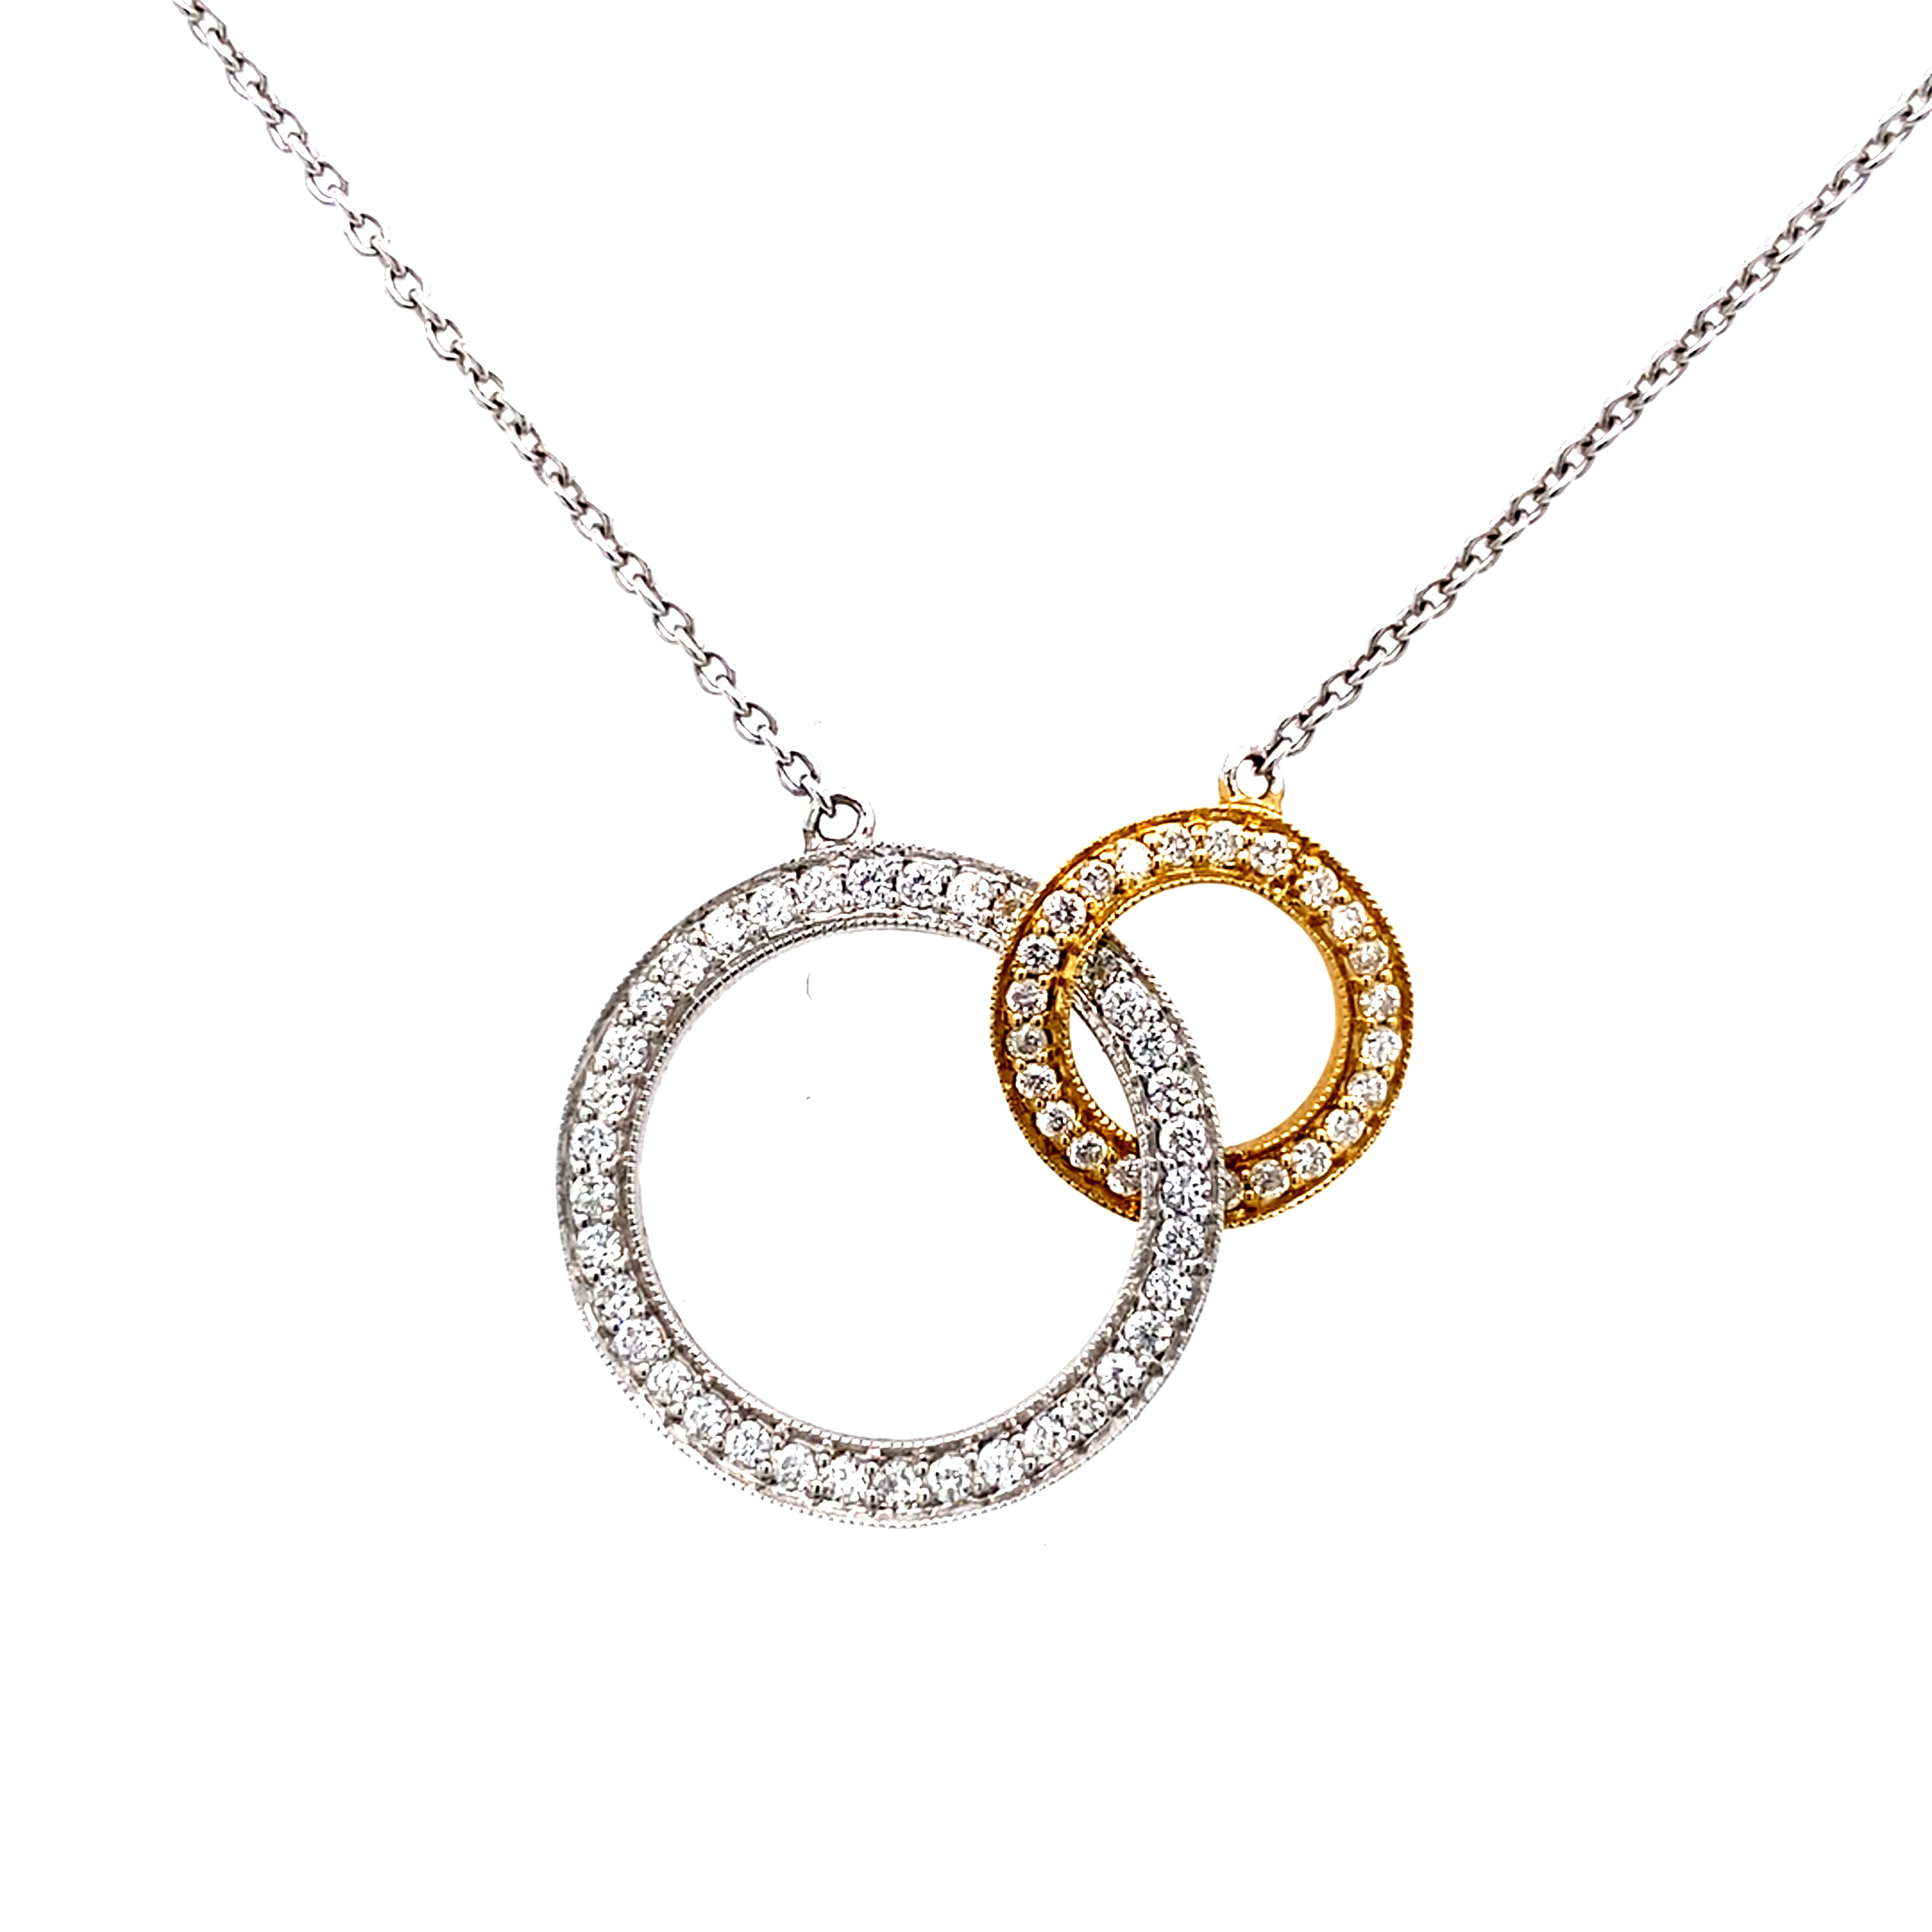 18 Carat White and Yellow Gold Diamond Necklace